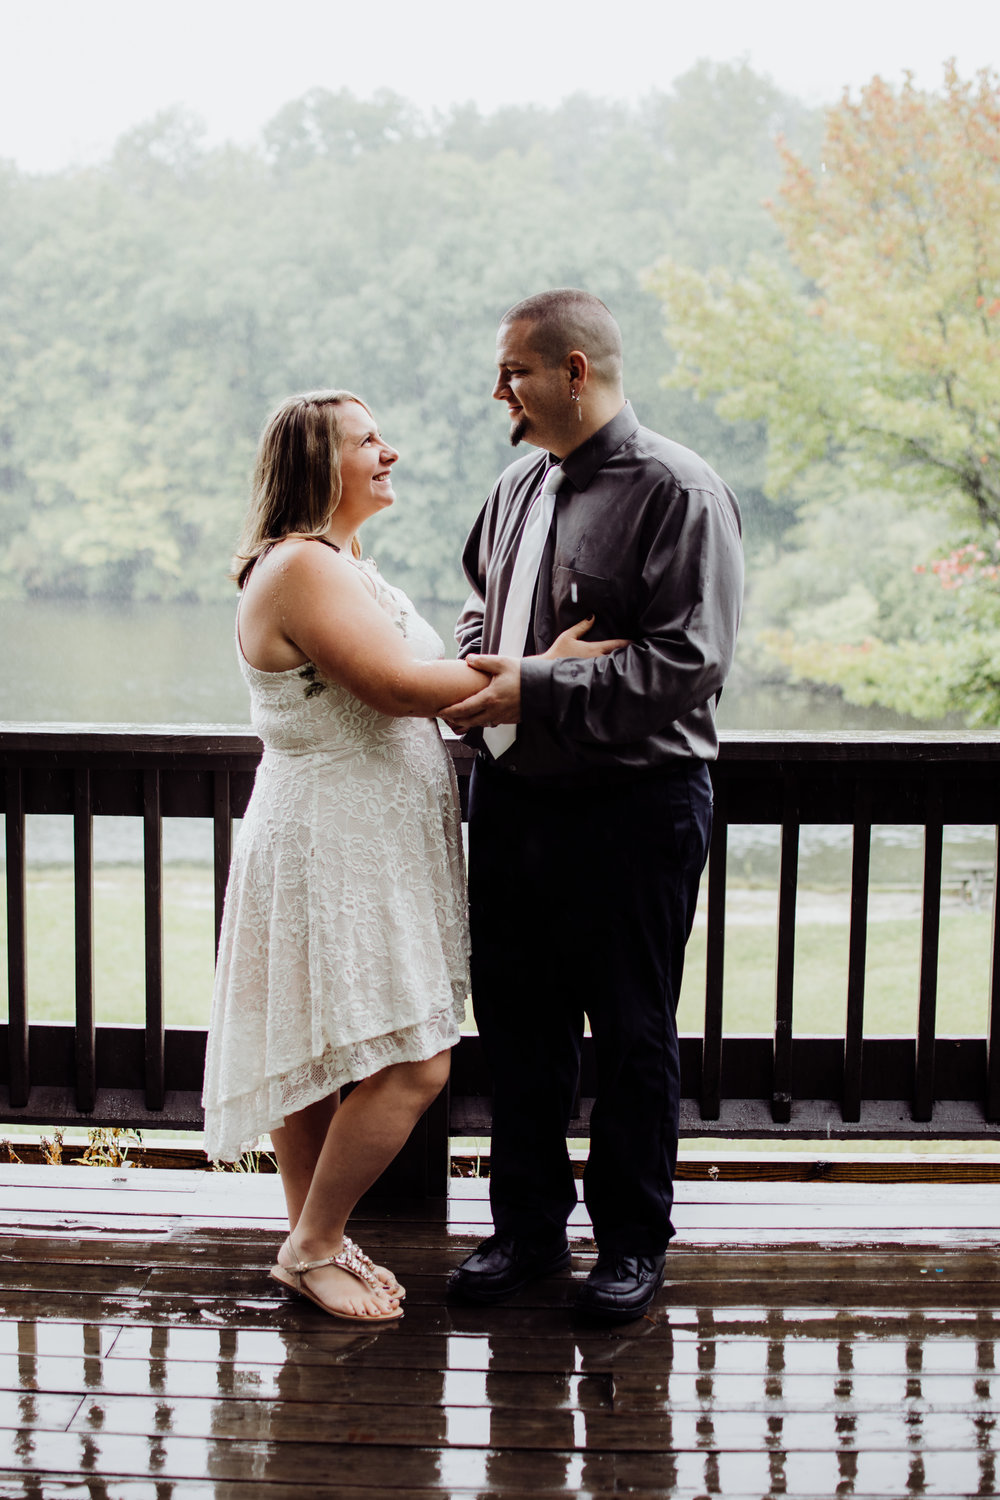 couple on the deck in the rain after getting married by a lake